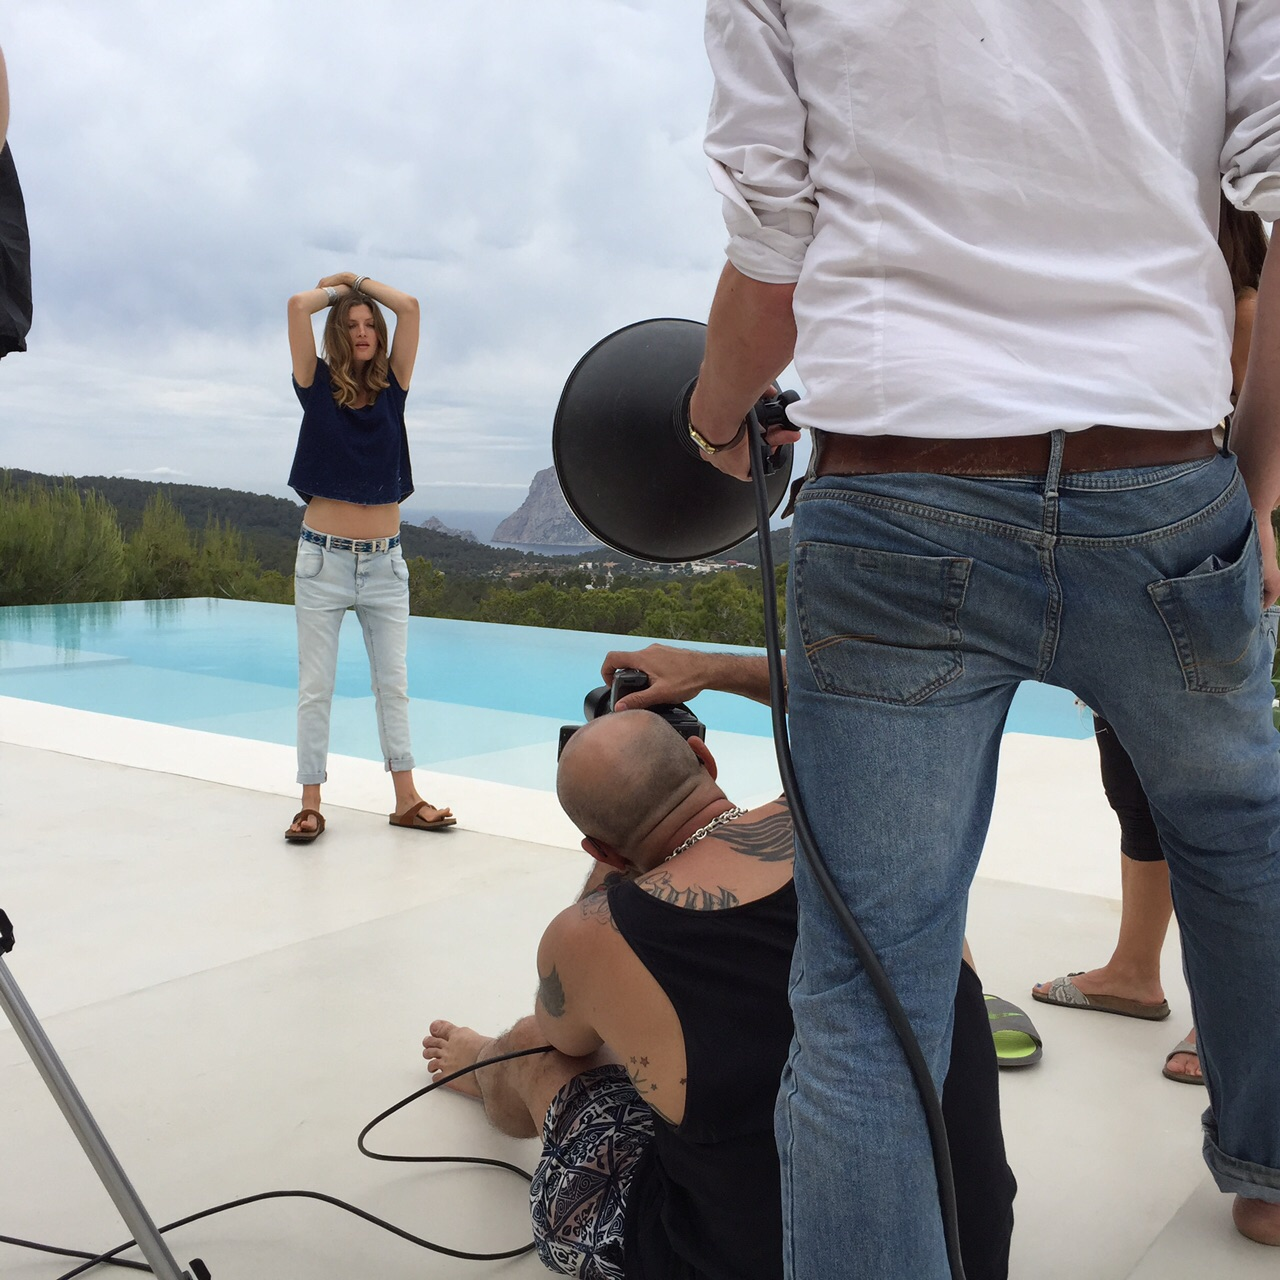 Fotograf und Model am Pool